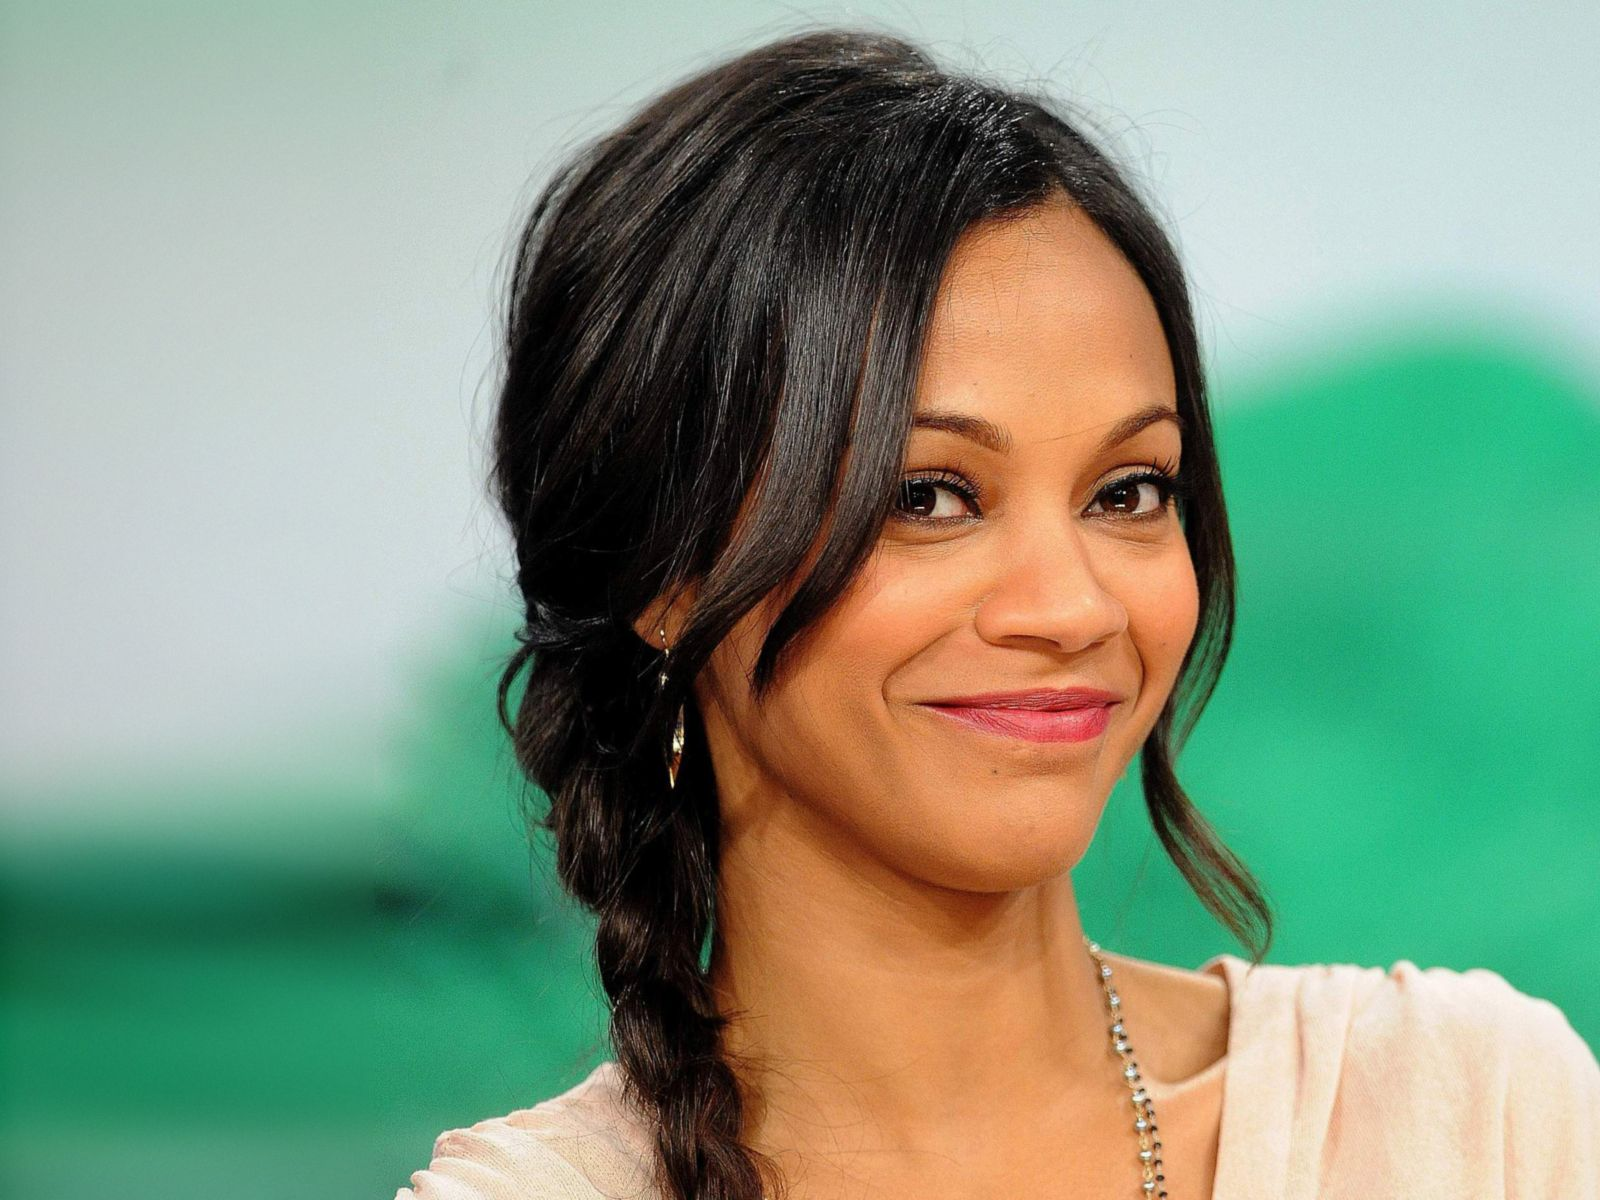 Zoe Saldana's response to 'joke' about husband's last name = perfect